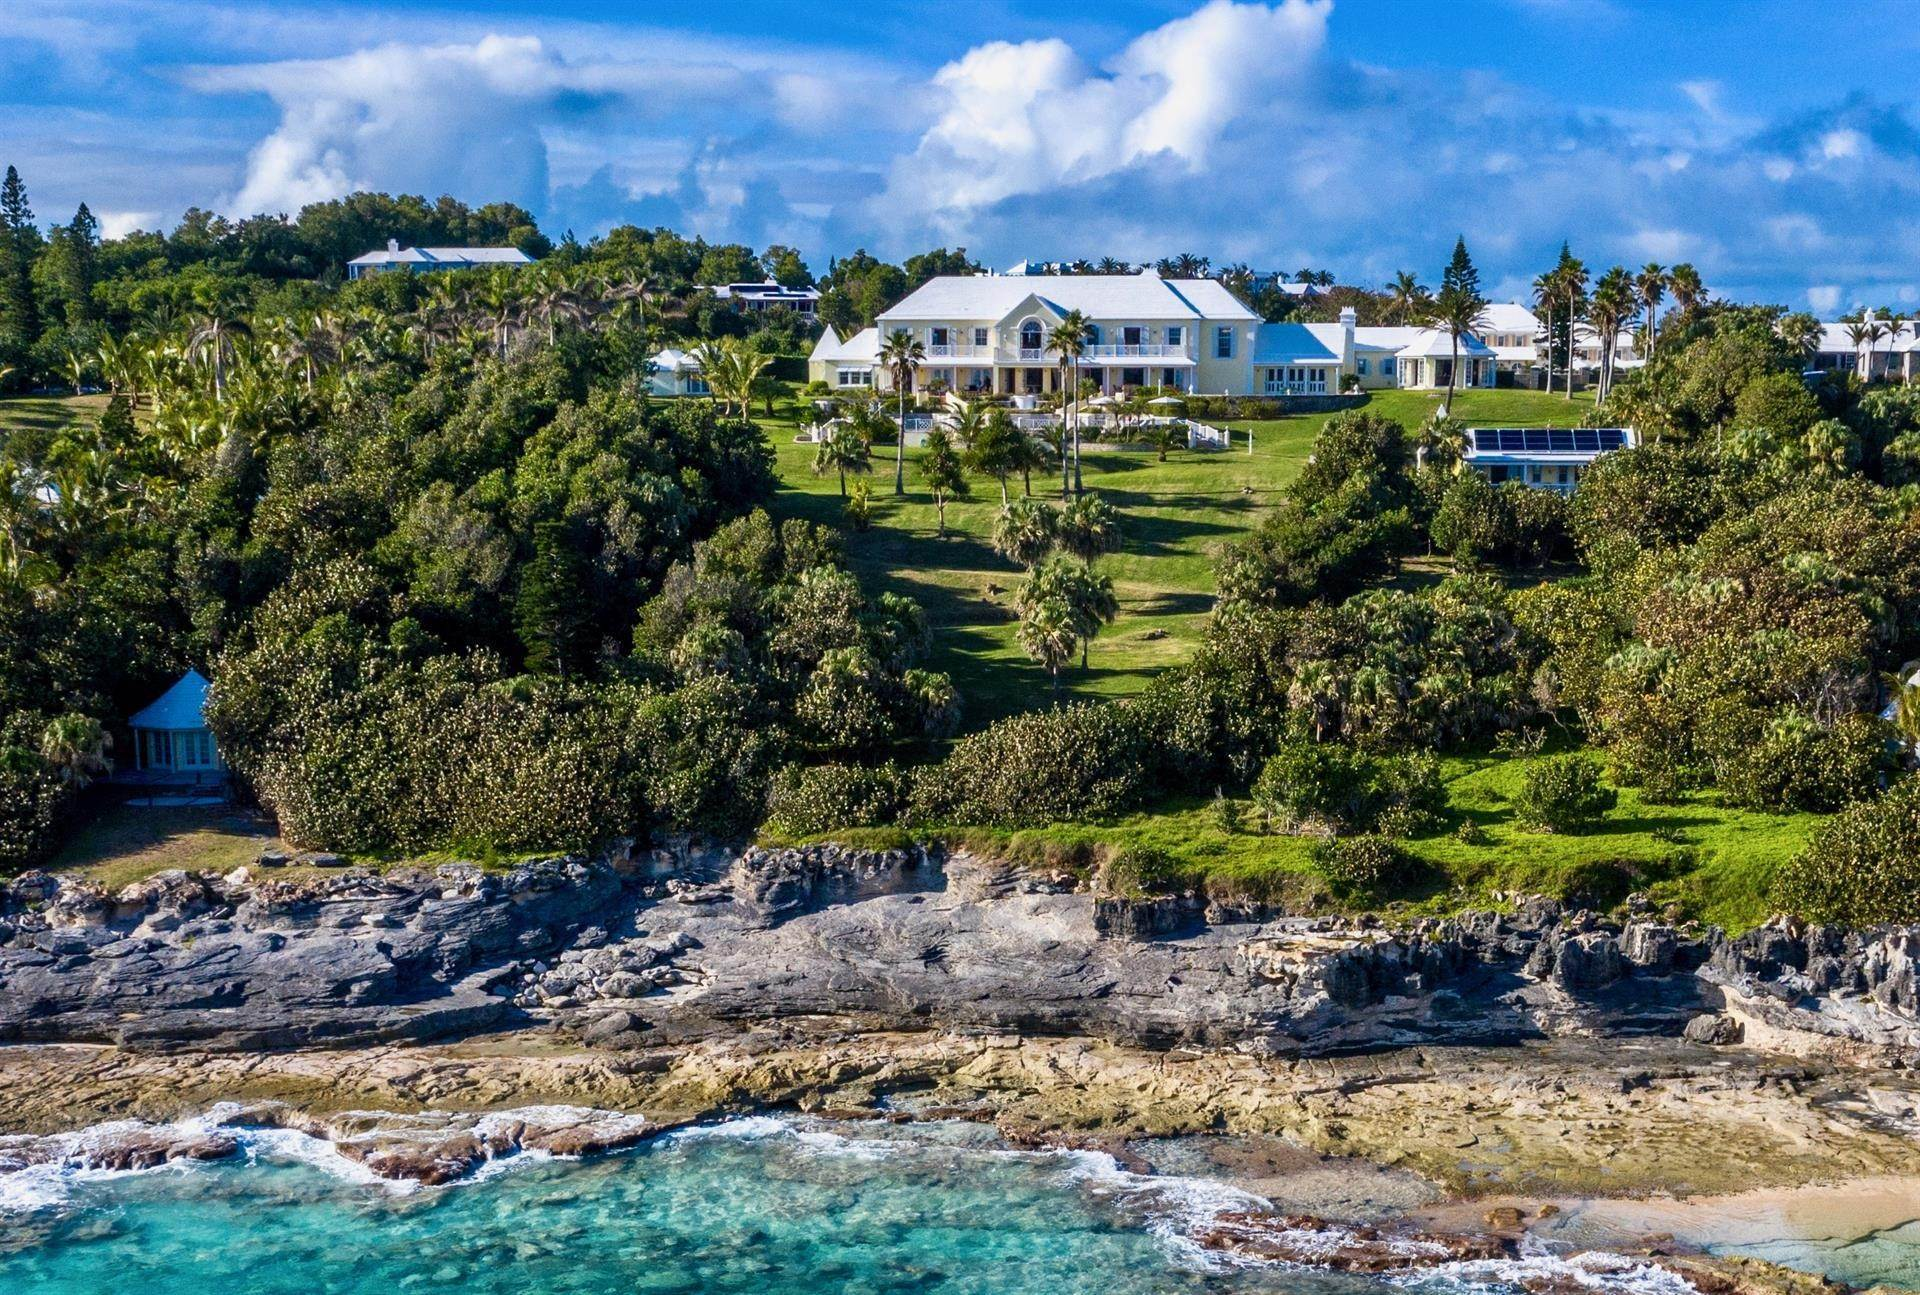 Property for Sale at Agapanthus On Grape Bay Agapanthus On Grape Bay, 11 Inglewood Lane,Bermuda – Sinclair Realty